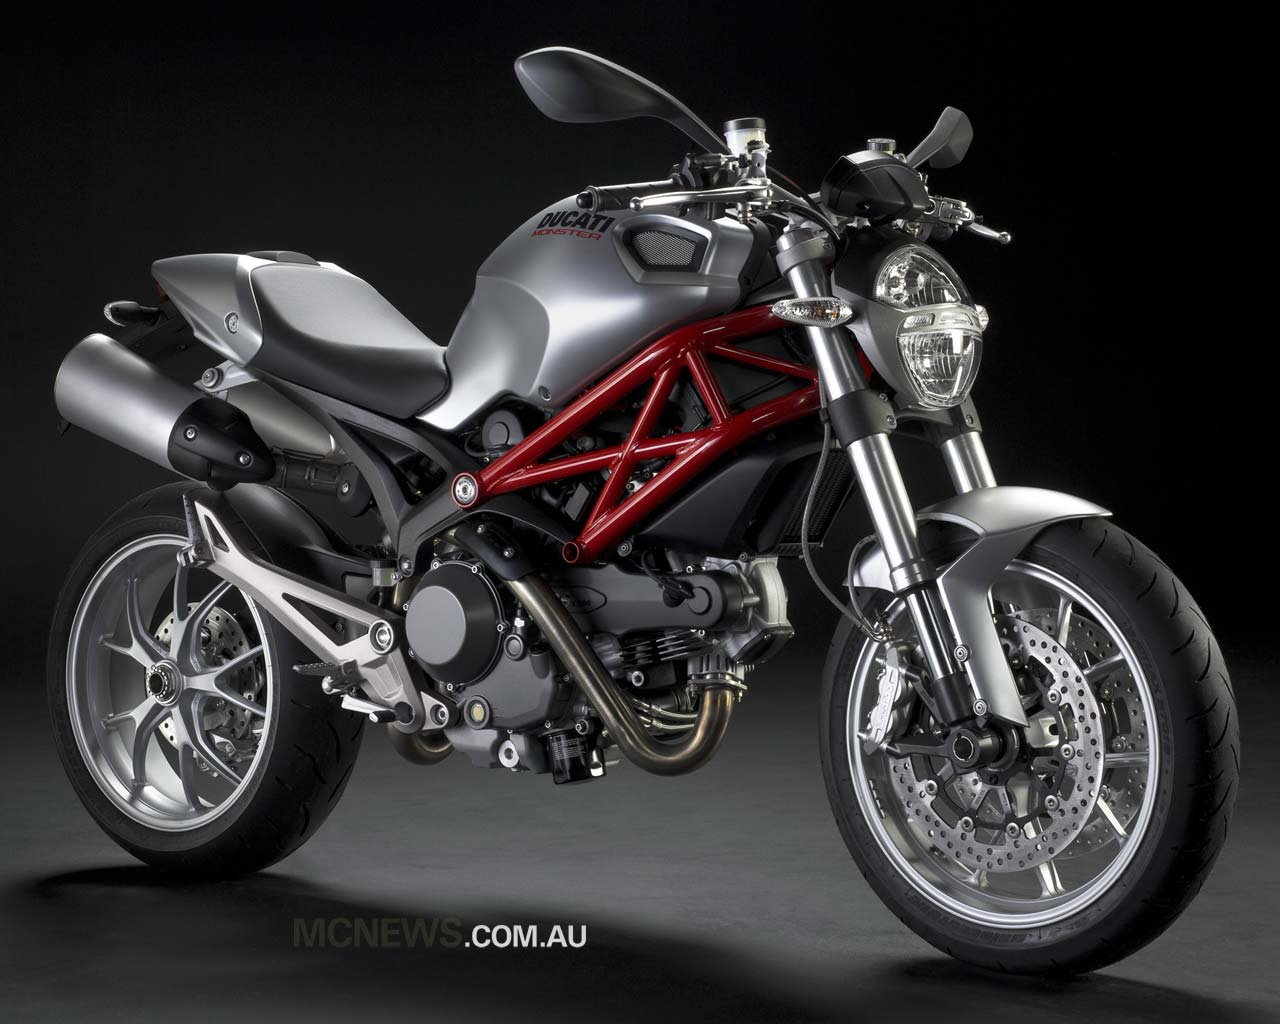 2009 Ducati Monster 1100S Motorcycles